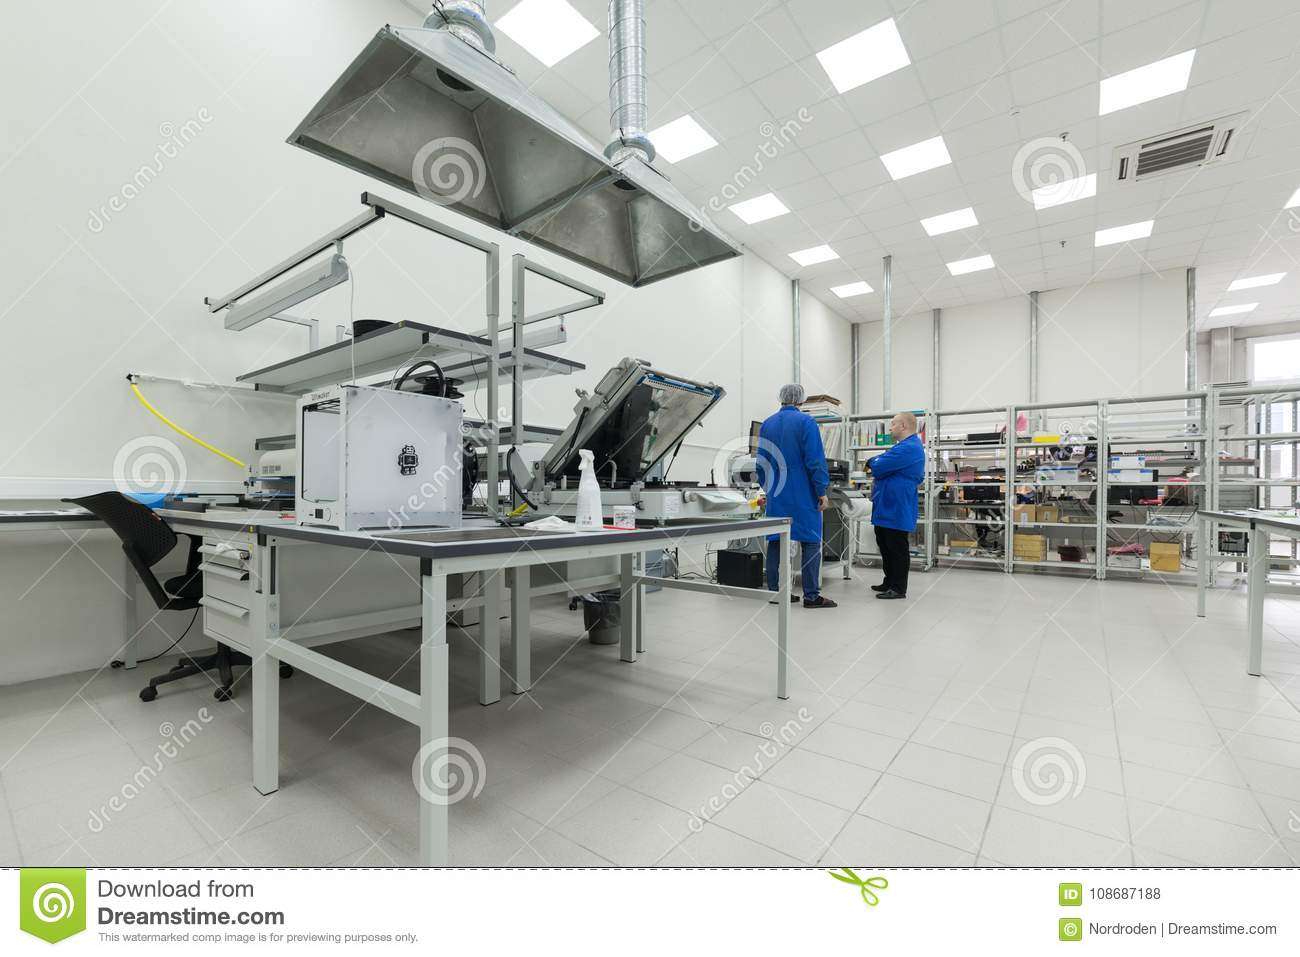 Factory For The Manufacture Of Electronic Printed Circuit Boards Board Assembly Services Buy Assemblyelectronic